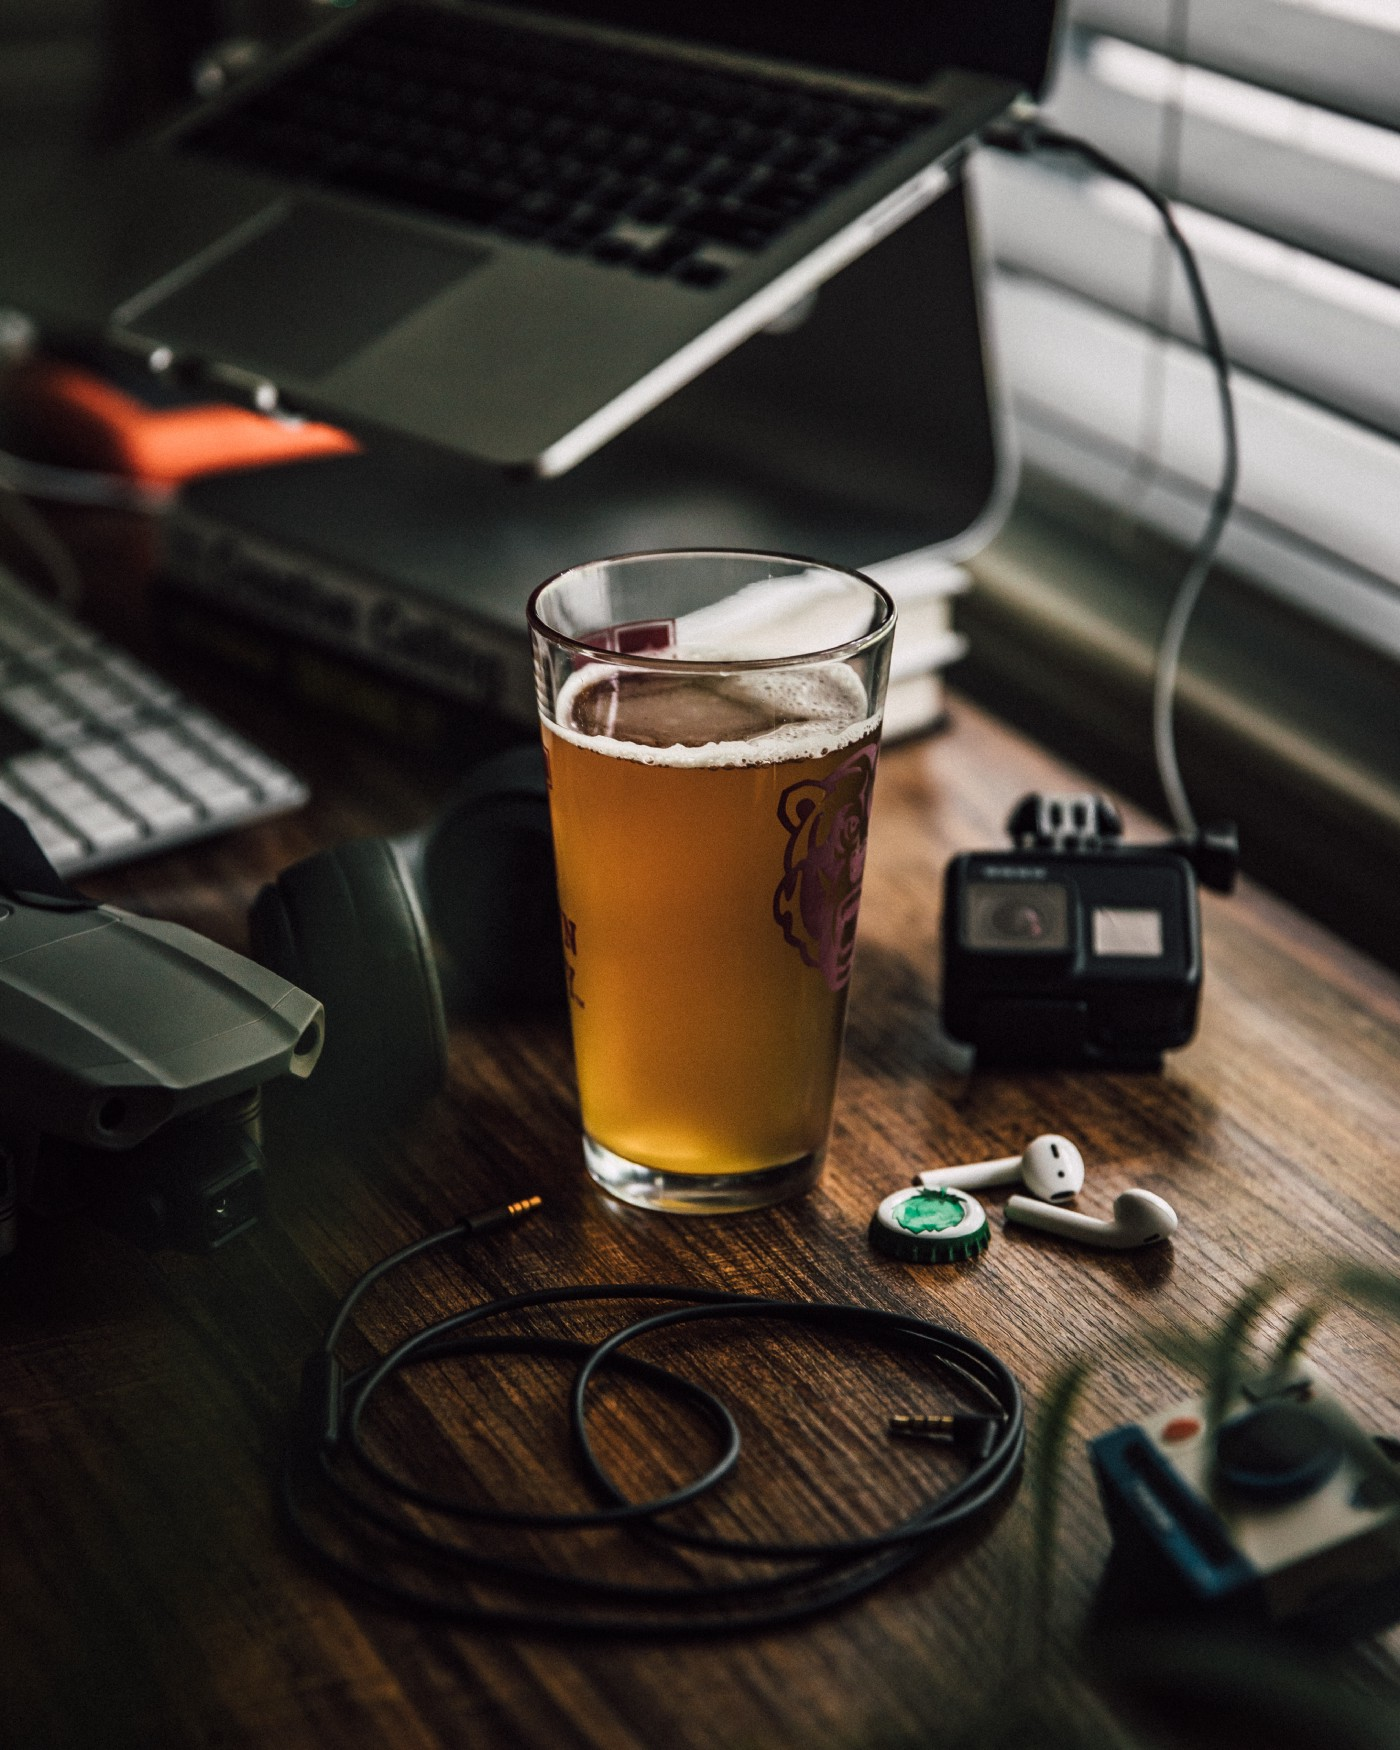 A glass of beer next to a keyboard and office equipment.